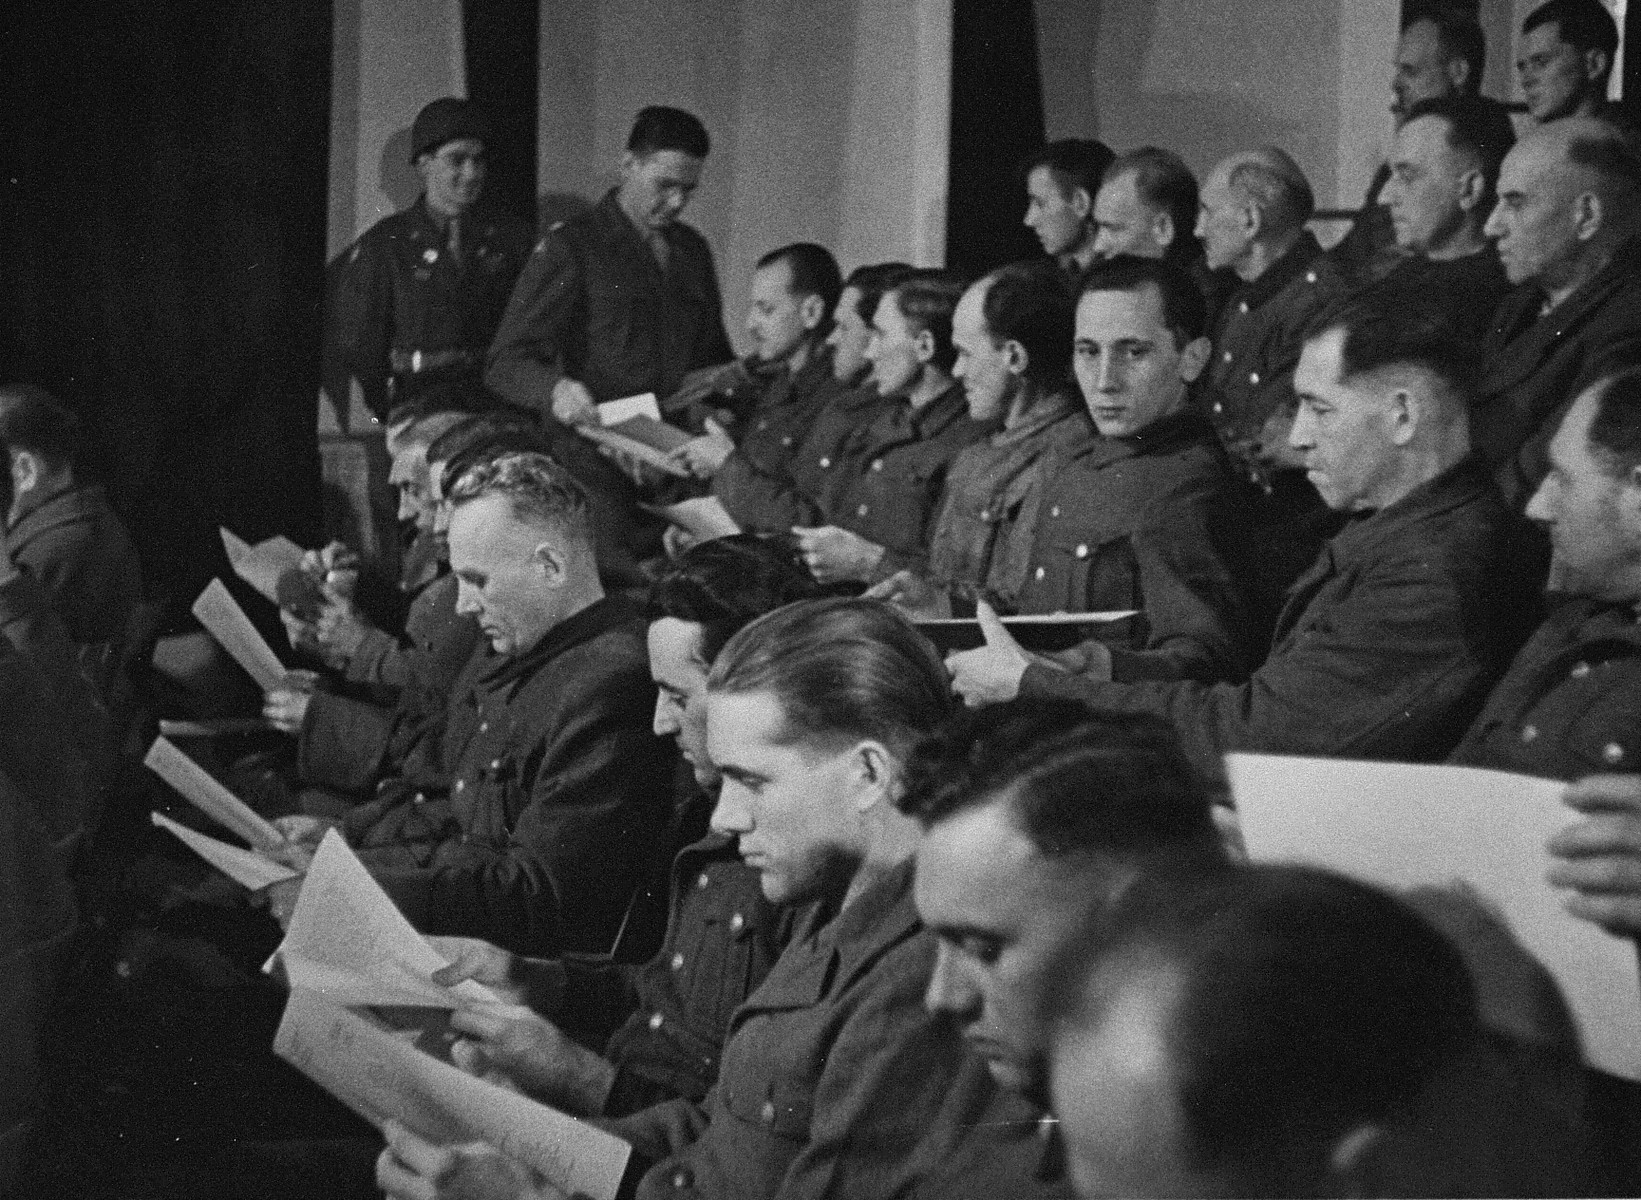 The defendants receive the indictments against them at the trial of 61 former camp personnel and prisoners from Mauthausen.